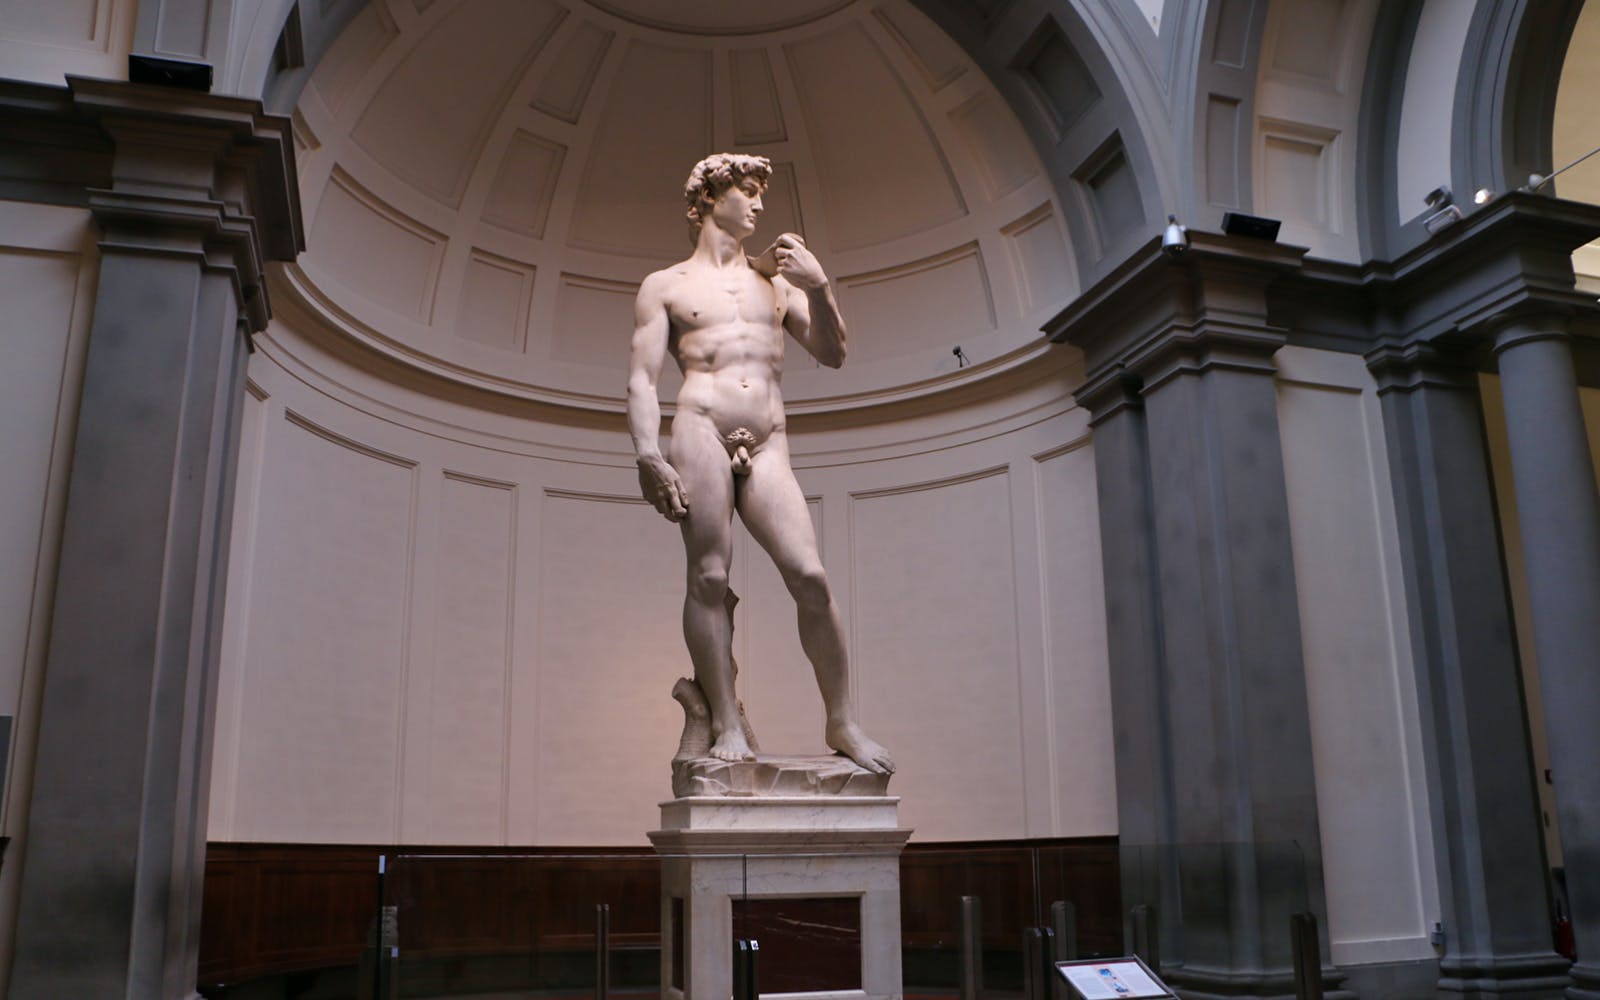 priority entrance tickets to the accademia gallery and michelangelo's david-1